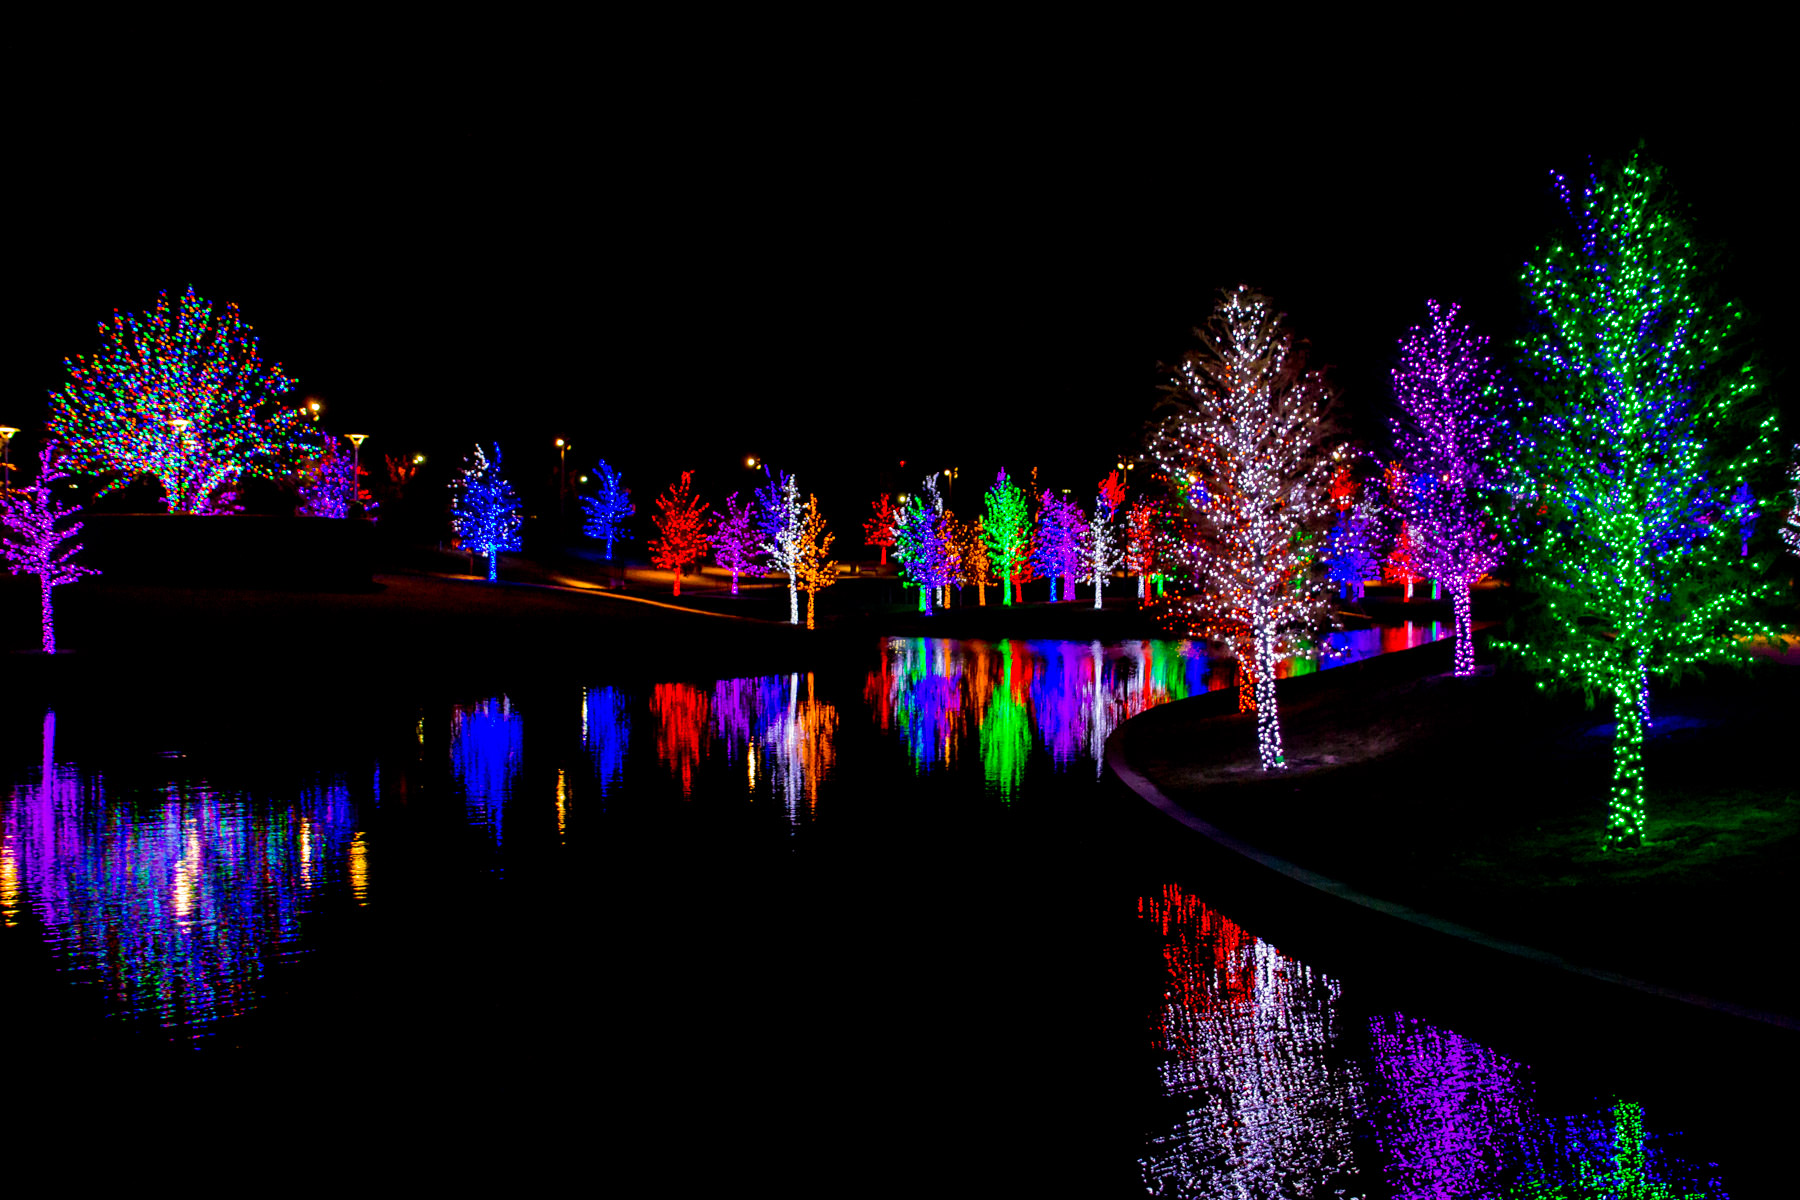 Trees in Addison, Texas' Vitruvian Park decorated for the holidays.